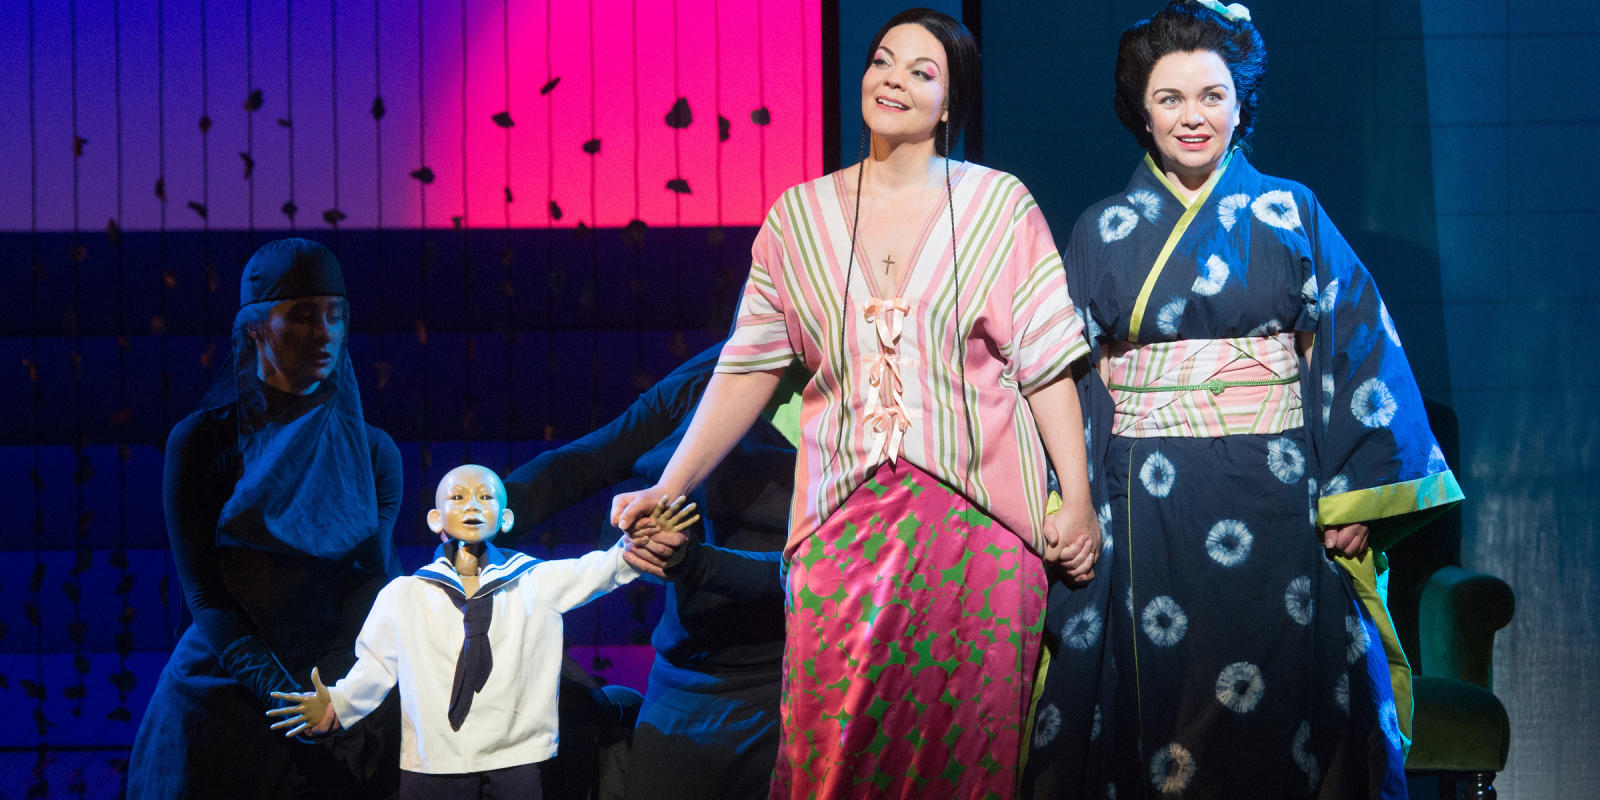 ENO Madam Butterfly Sorrow with Rena Harms and Stephanie Windsor-Lewis (c) Tom Bowles